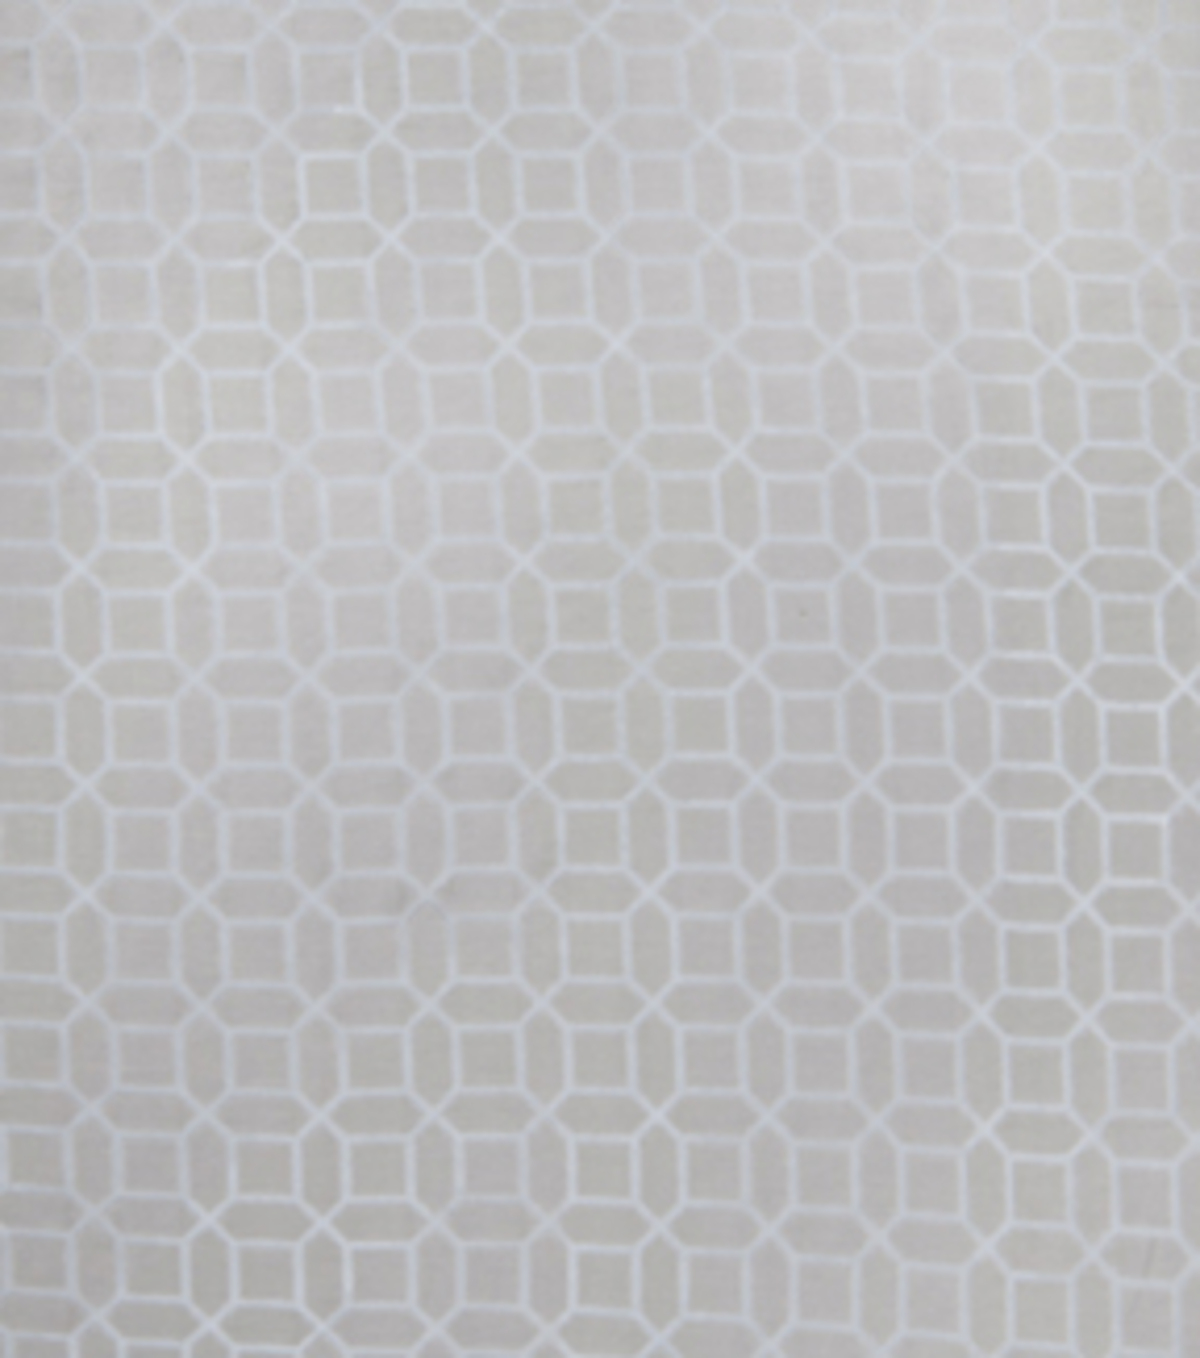 Home Decor 8\u0022x8\u0022 Fabric Swatch-Eaton Square Cute   Flax